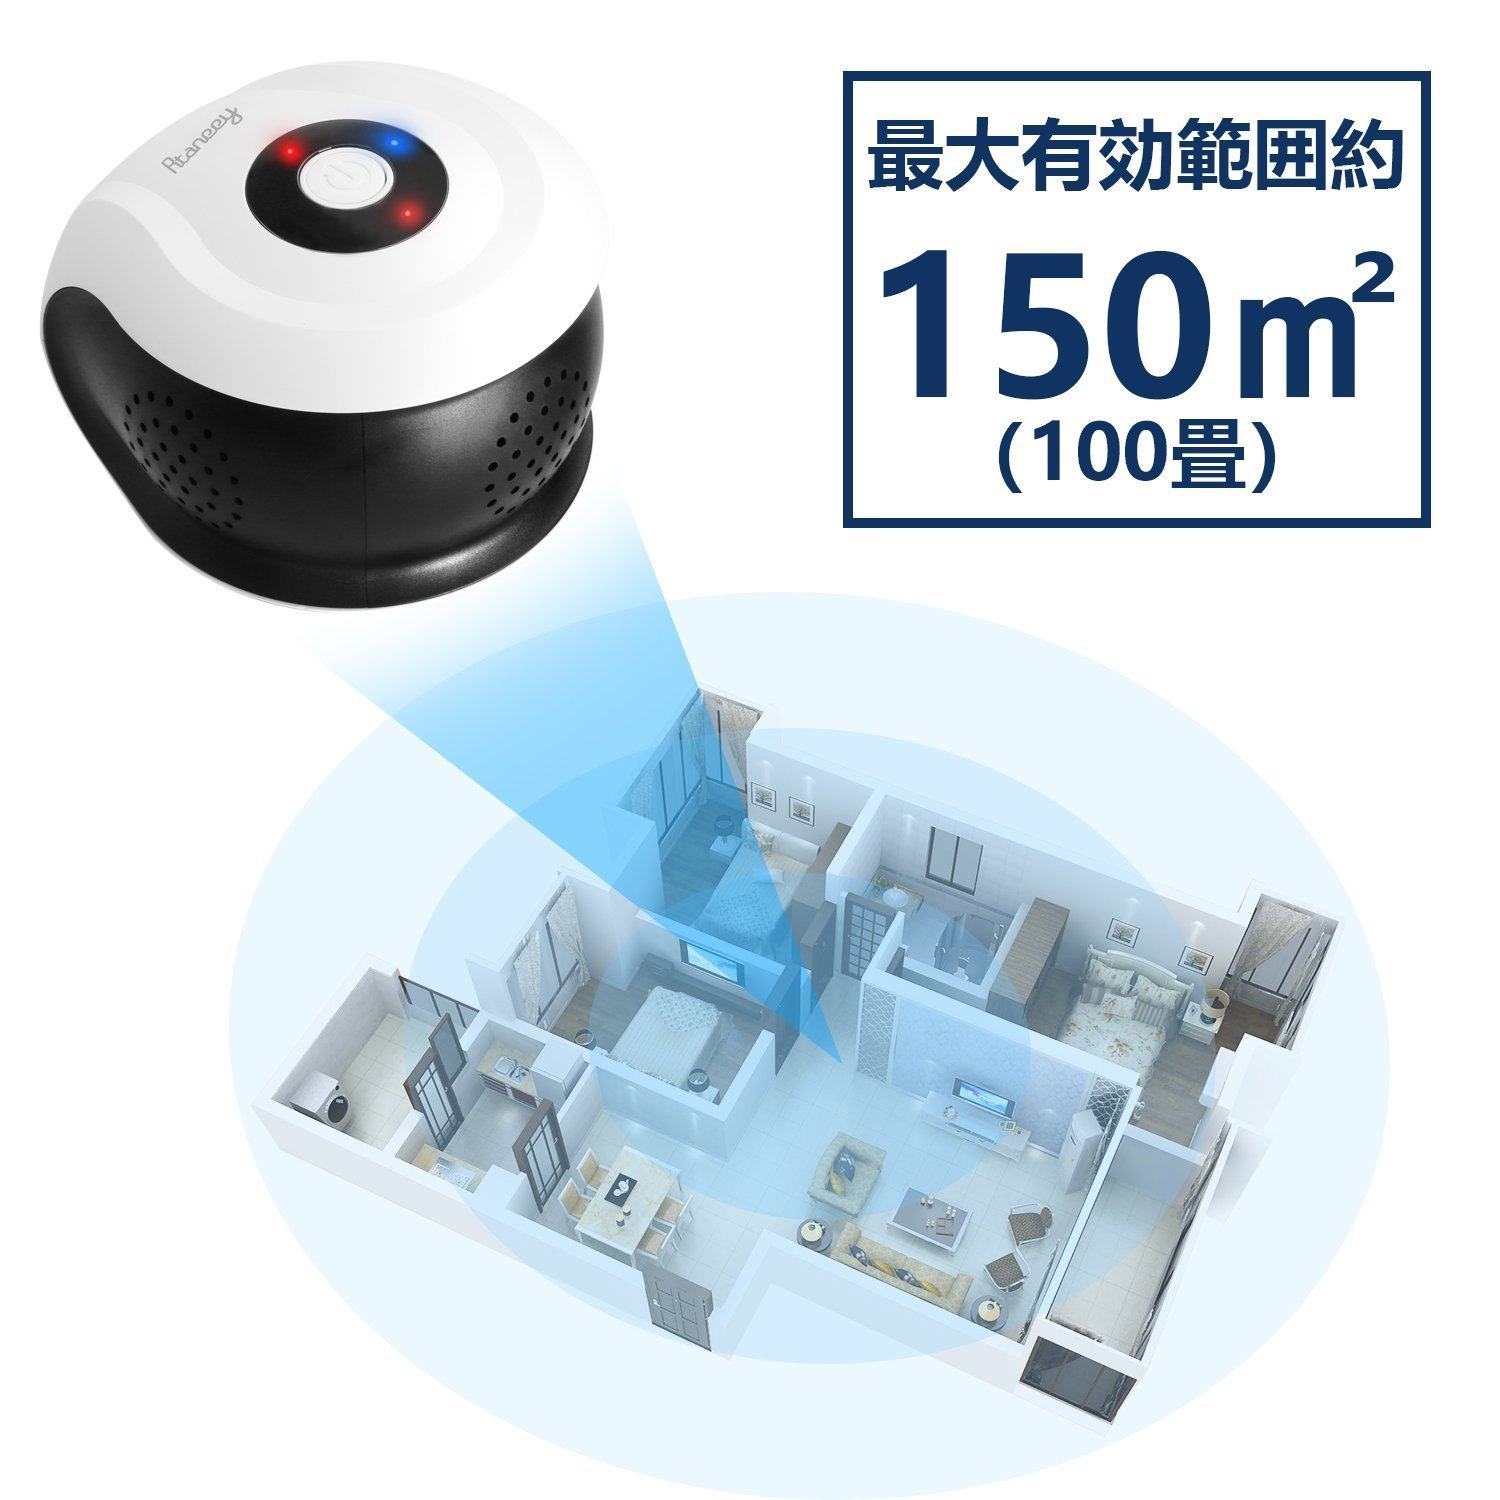 Rtaneey Ultrasonic Pest Repeller Plug In Electronic Zapper Circuit Diagram Bing Images Bug Repellent Control 360 Degree Coverage 6 Kinds Of Ultrasound Wave Mosquito